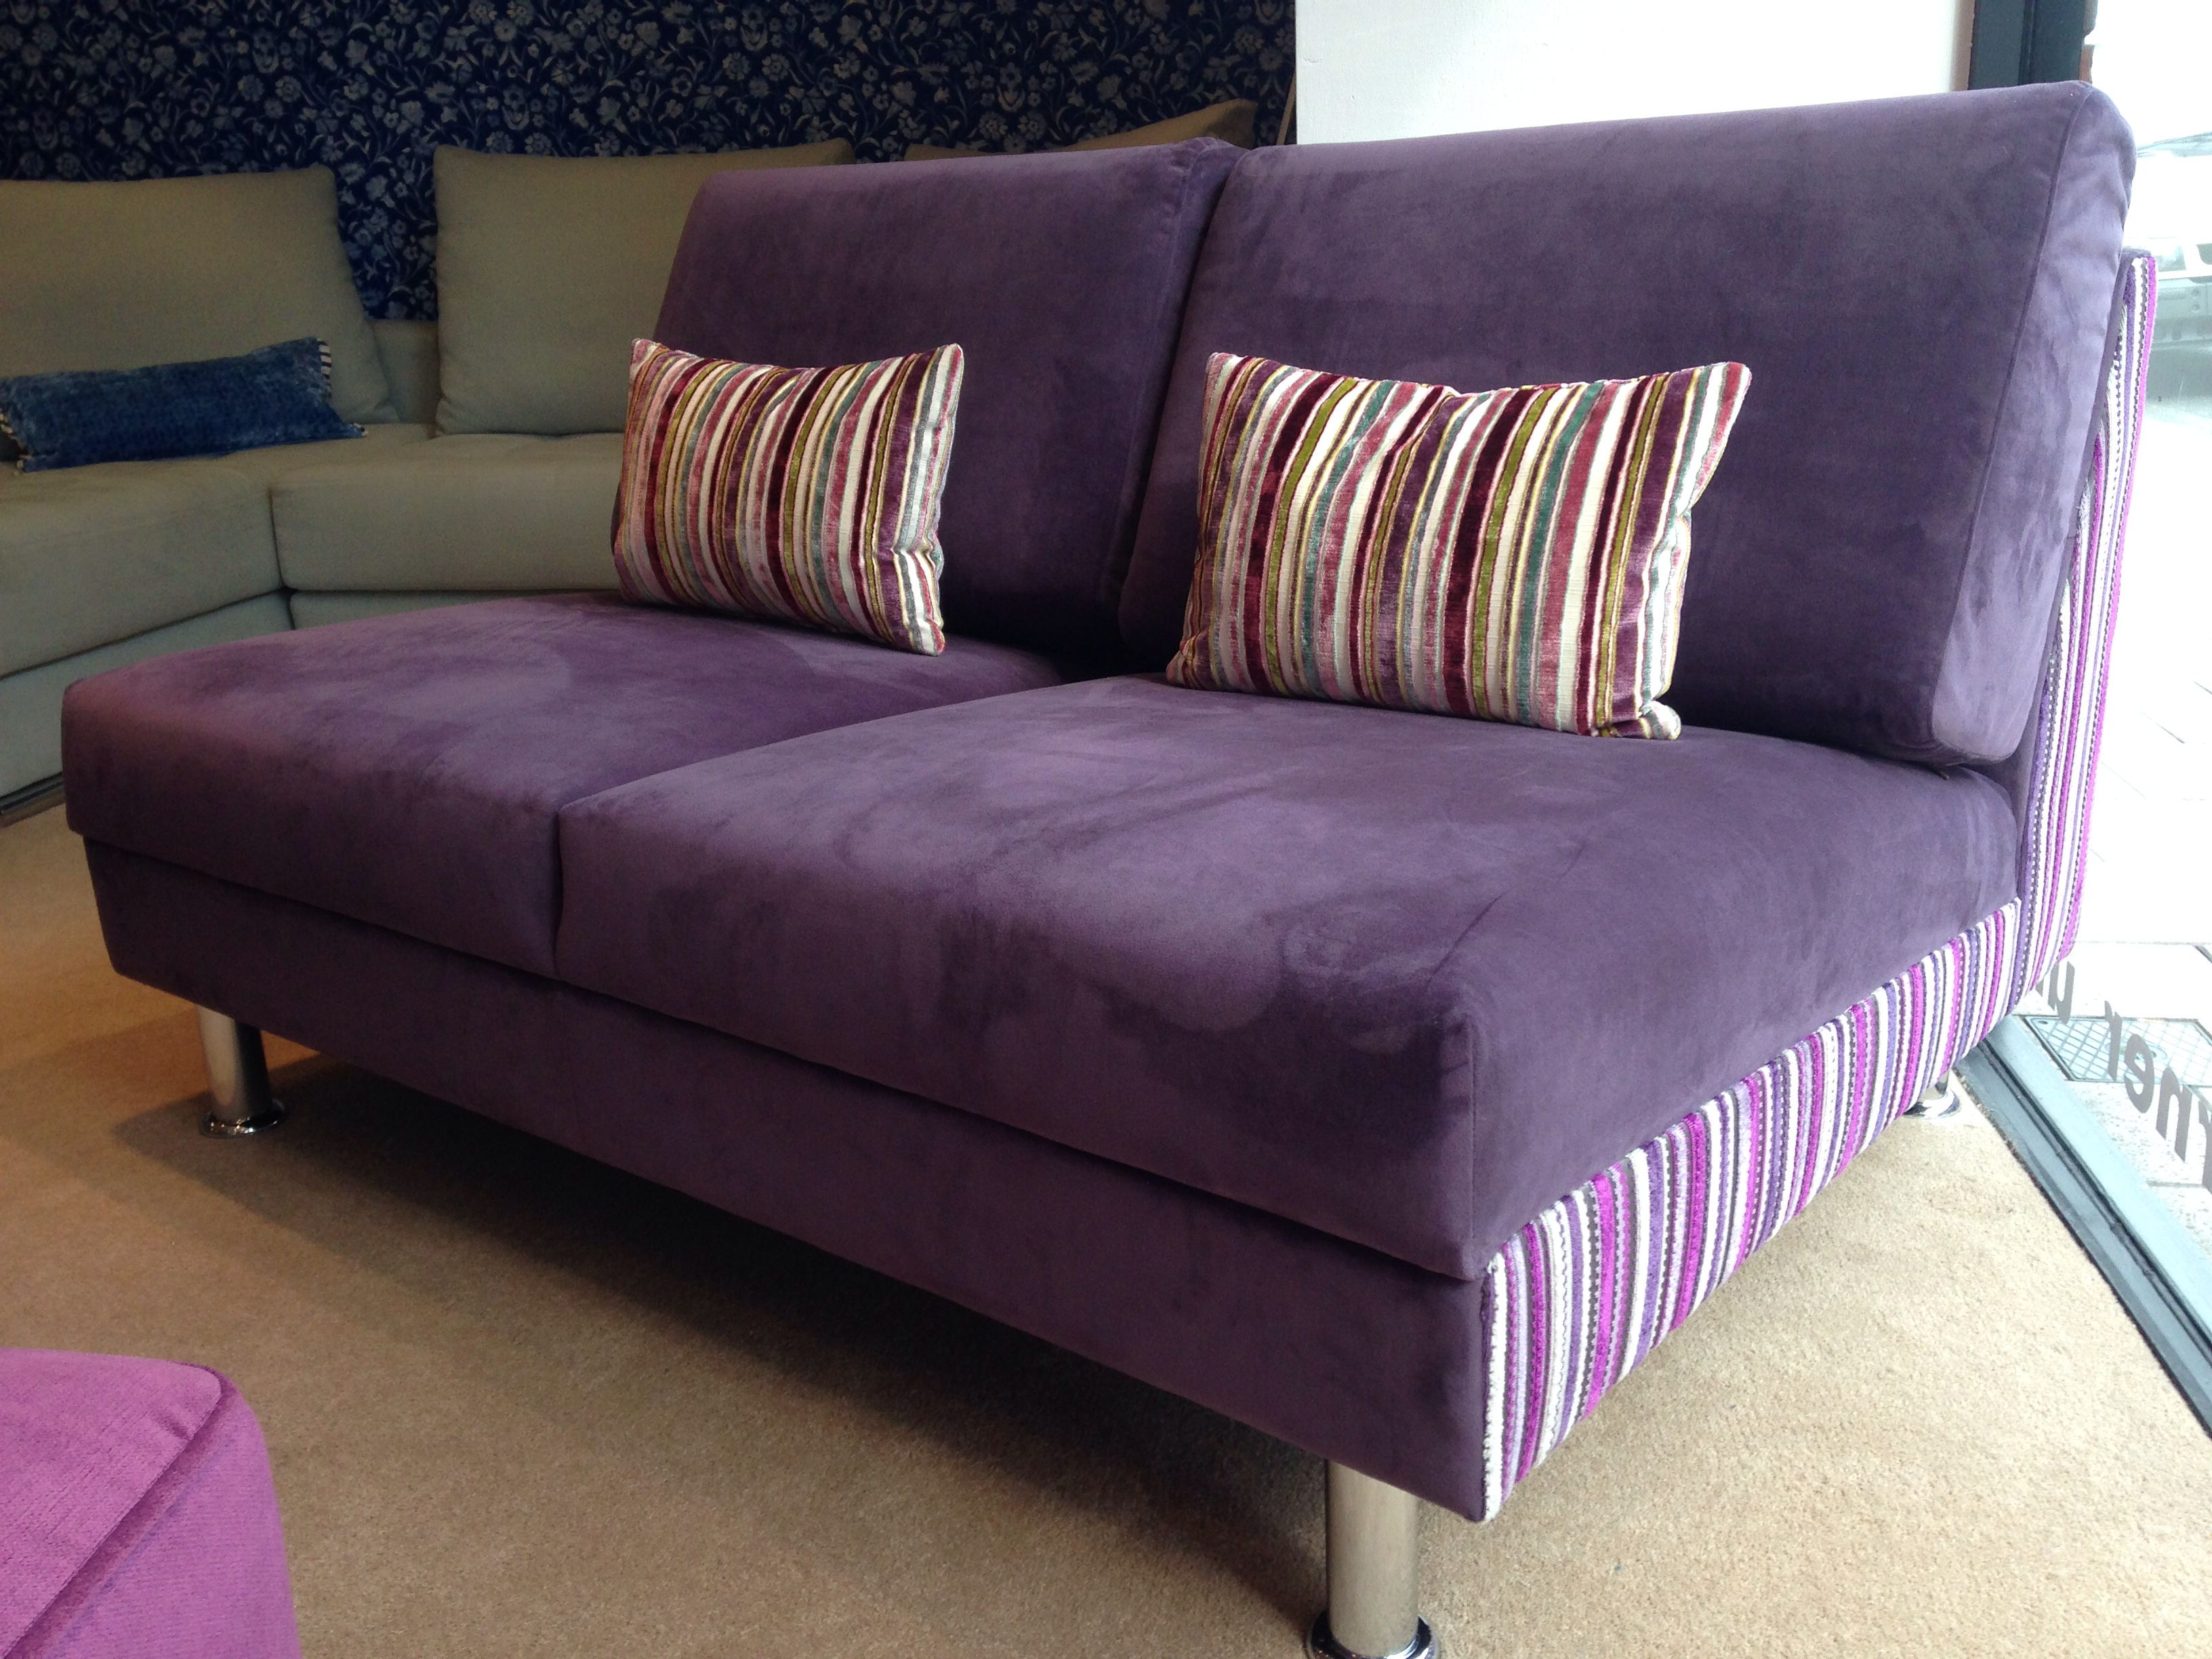 Contemporary armless sofa Corylus 140 cm wide in